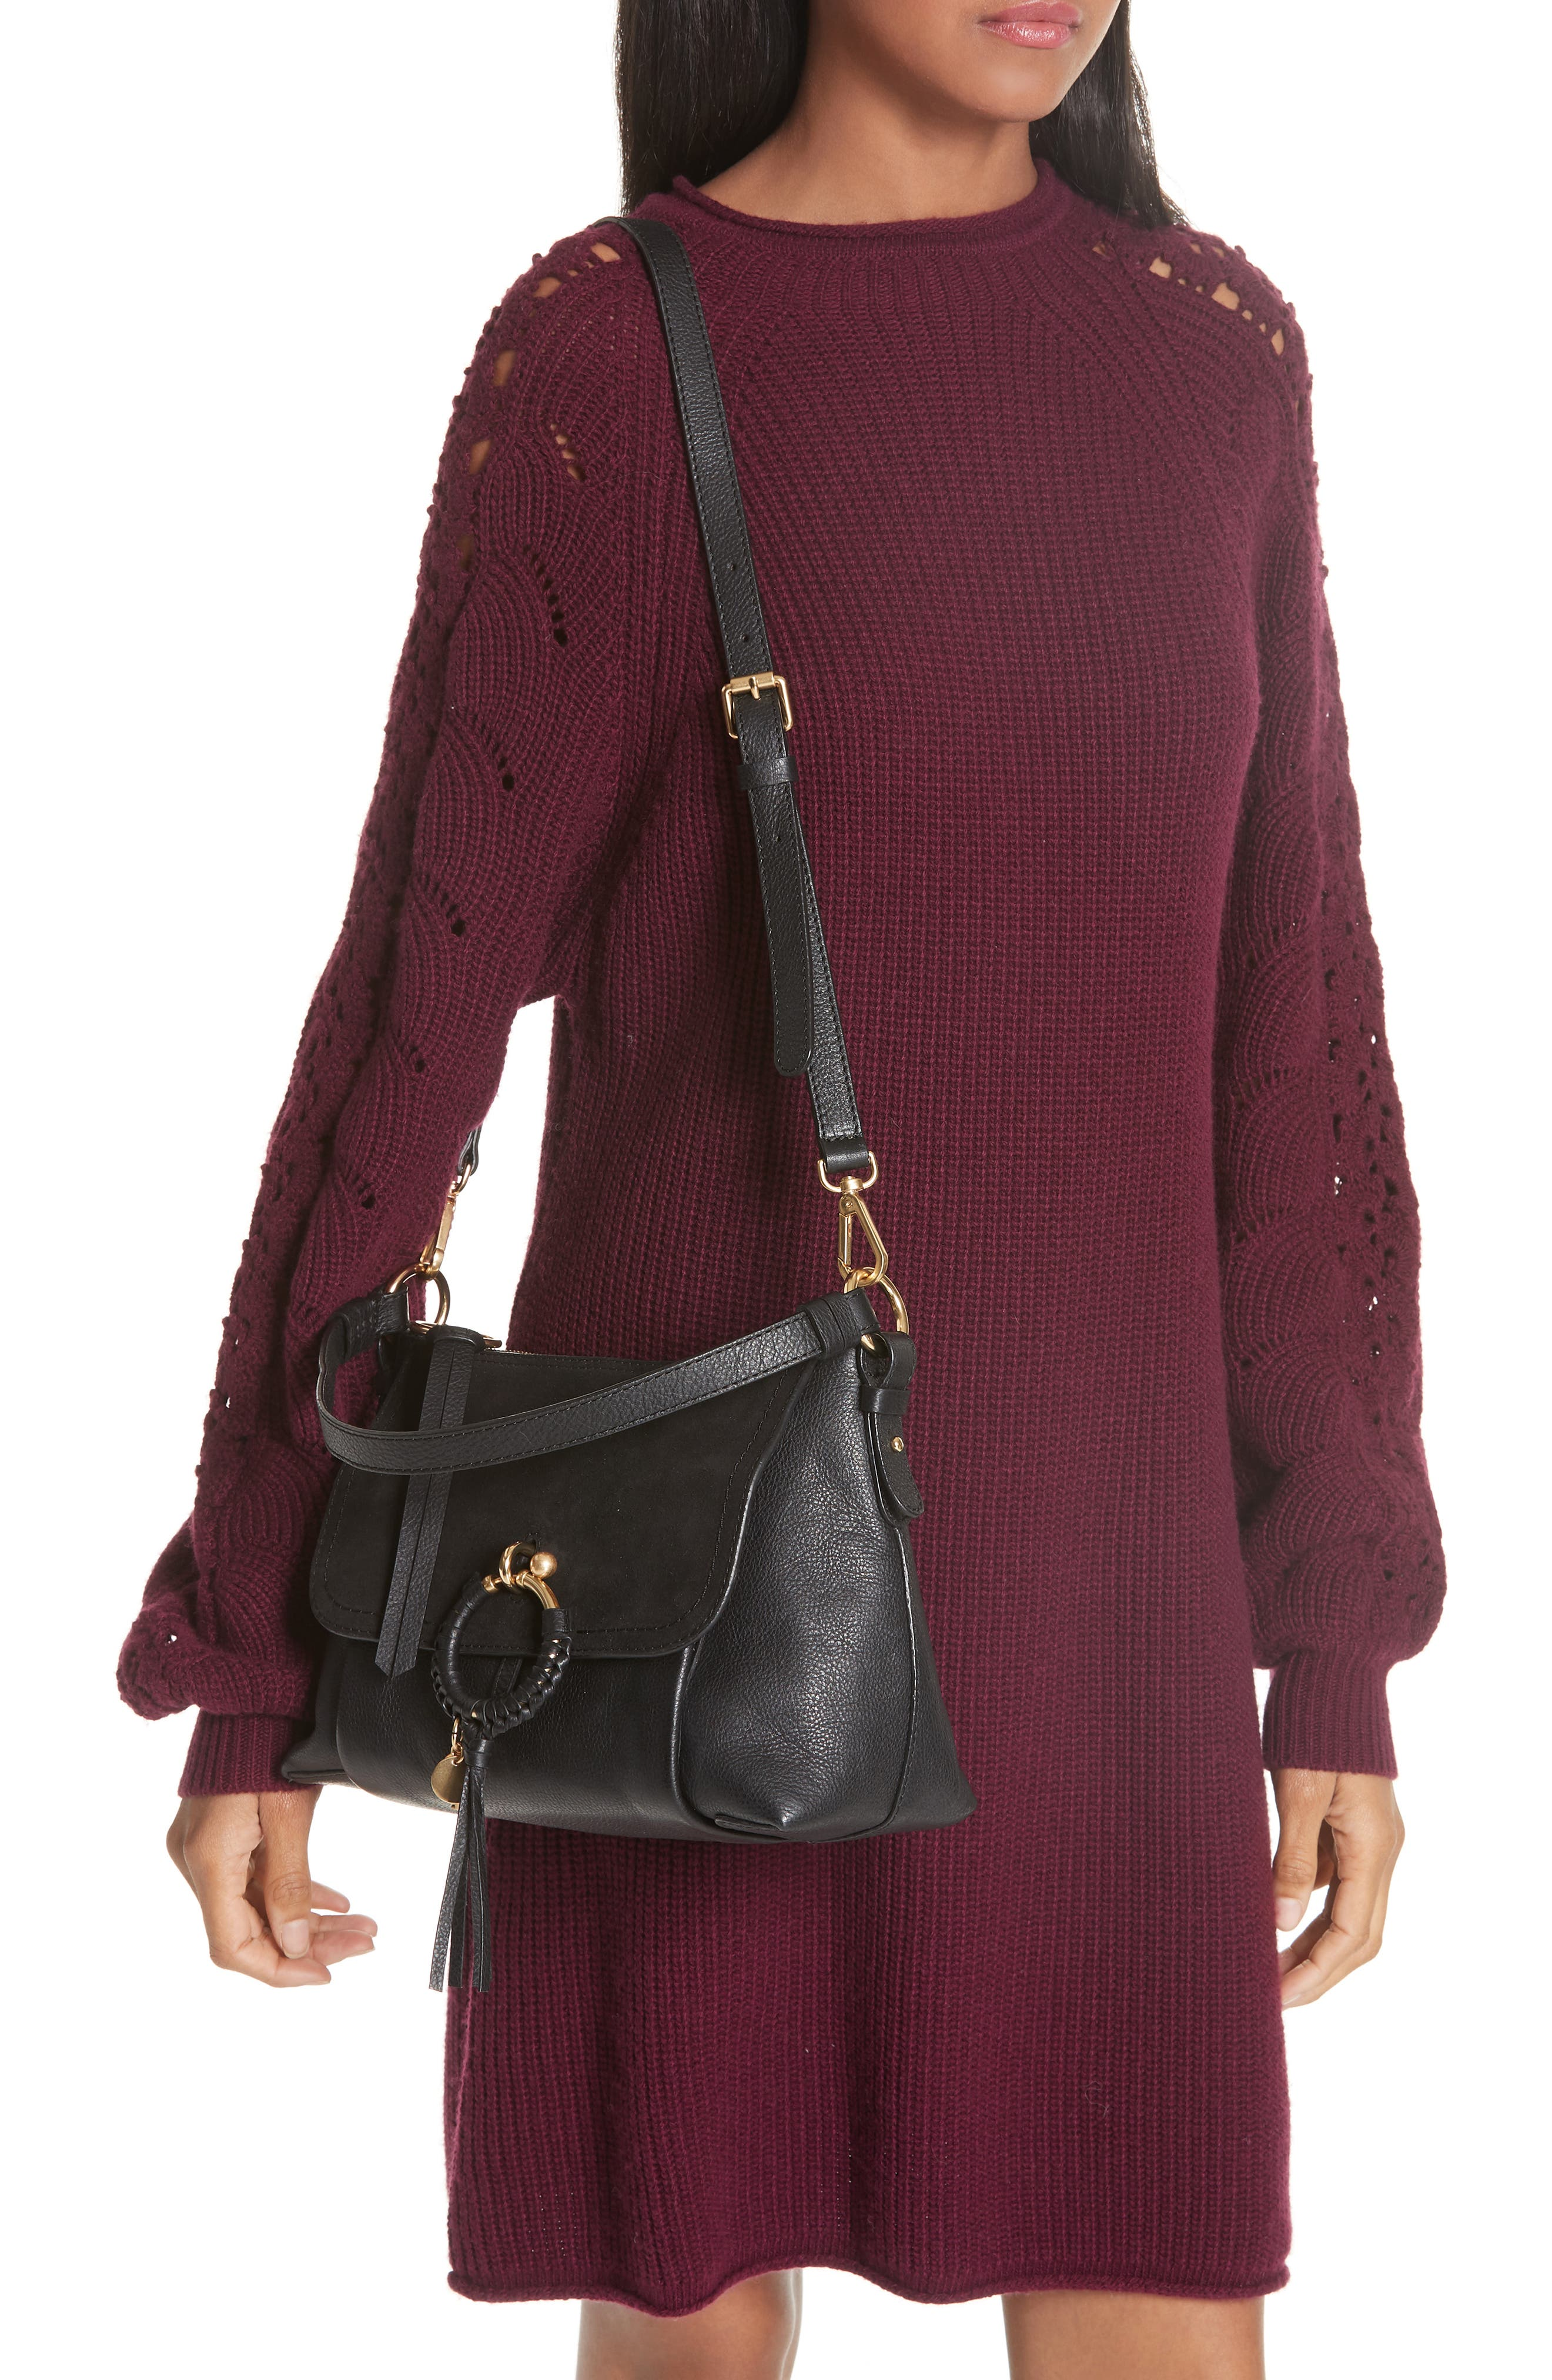 SEE BY CHLOÉ, Small Joan Suede & Leather Crossbody Bag, Alternate thumbnail 2, color, BLACK